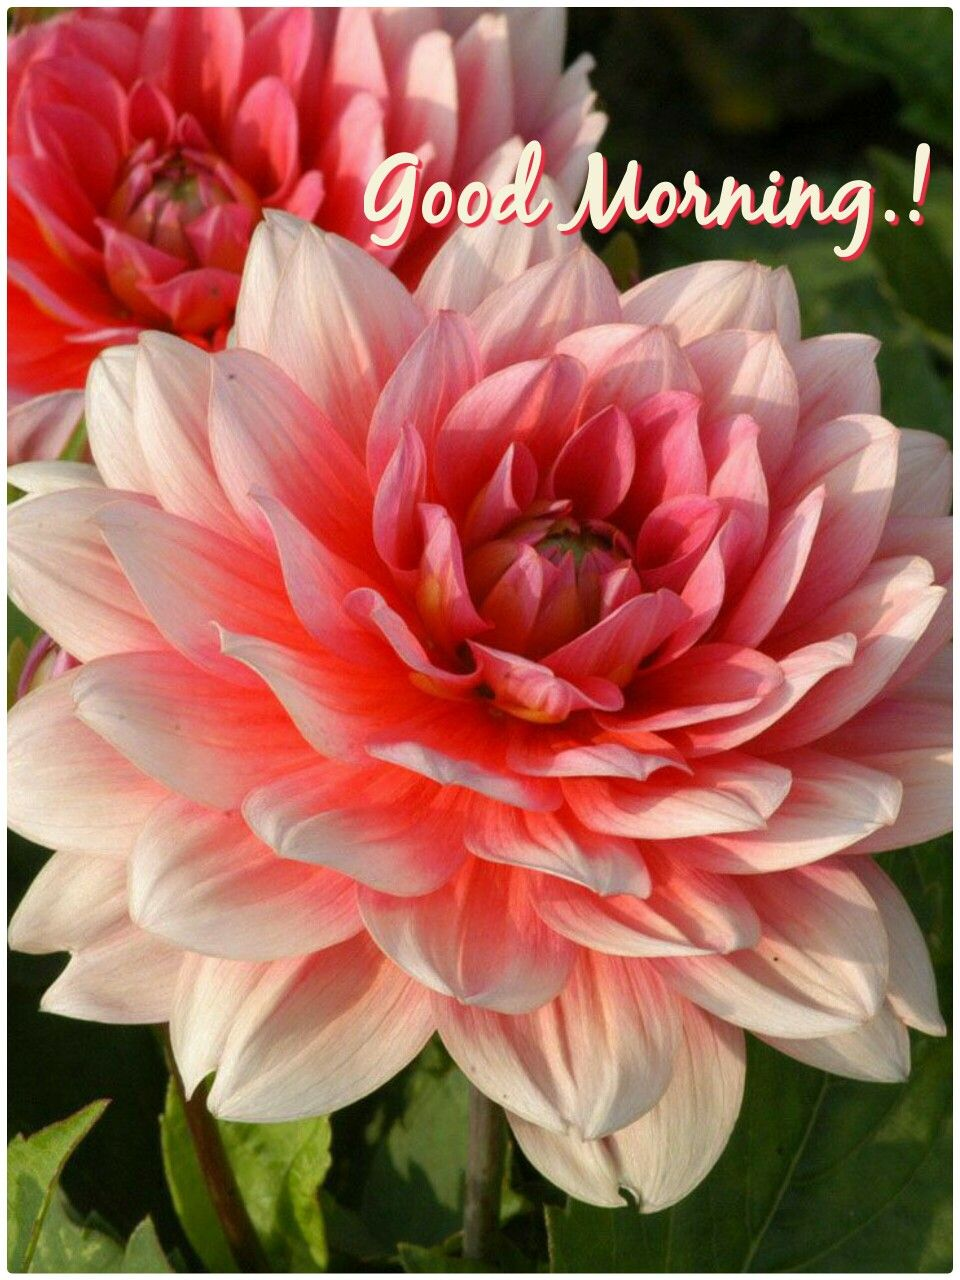 Pin By Anoop Patel On Good Morning Pinterest Dahlia Flowers And